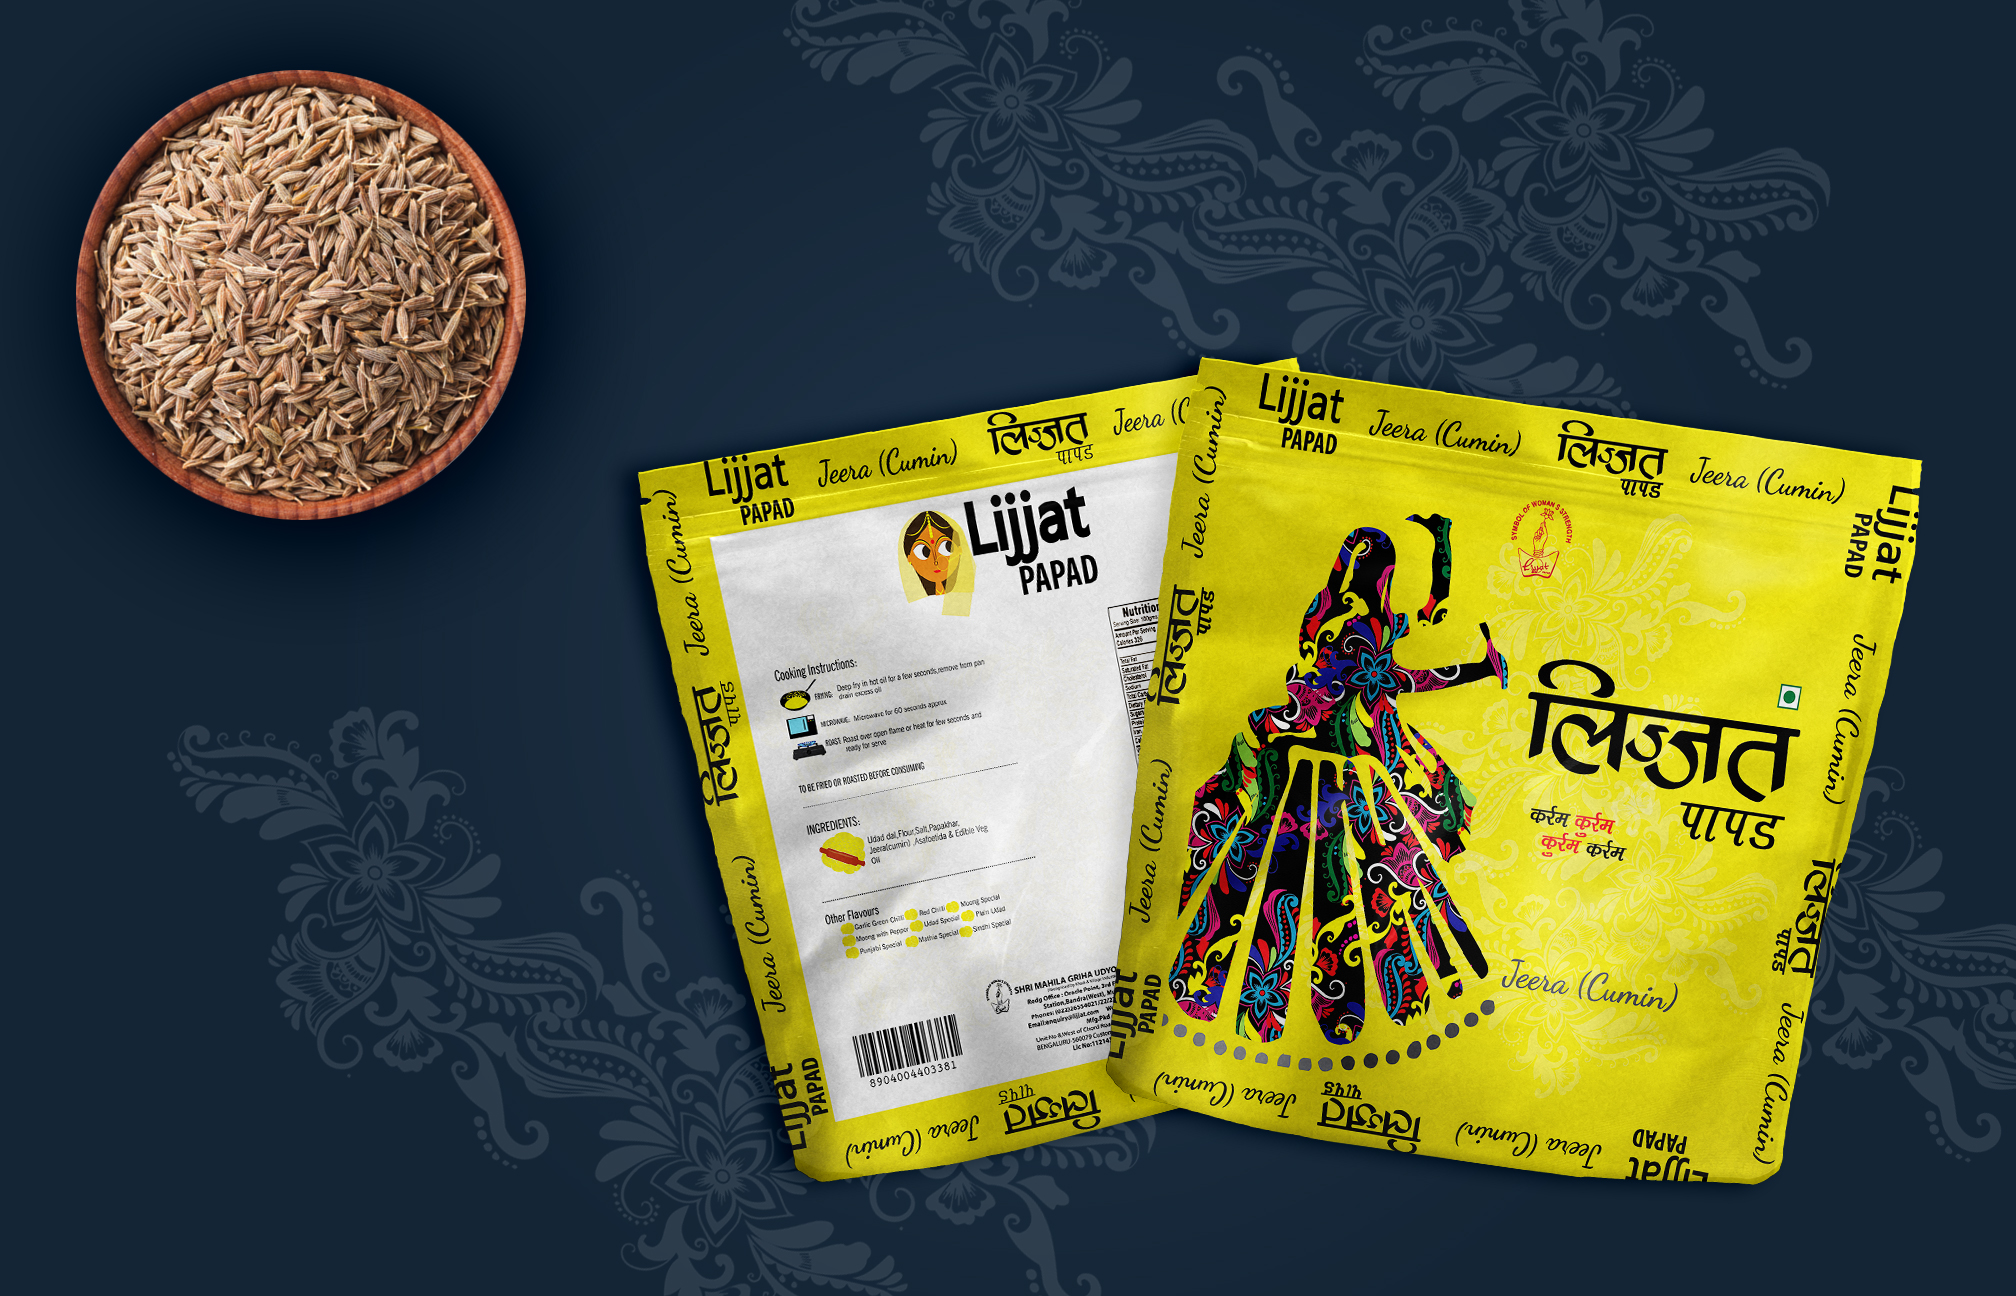 Student Conceptual Modern Papad Packaging Design from India / World Brand & Packaging Design Society